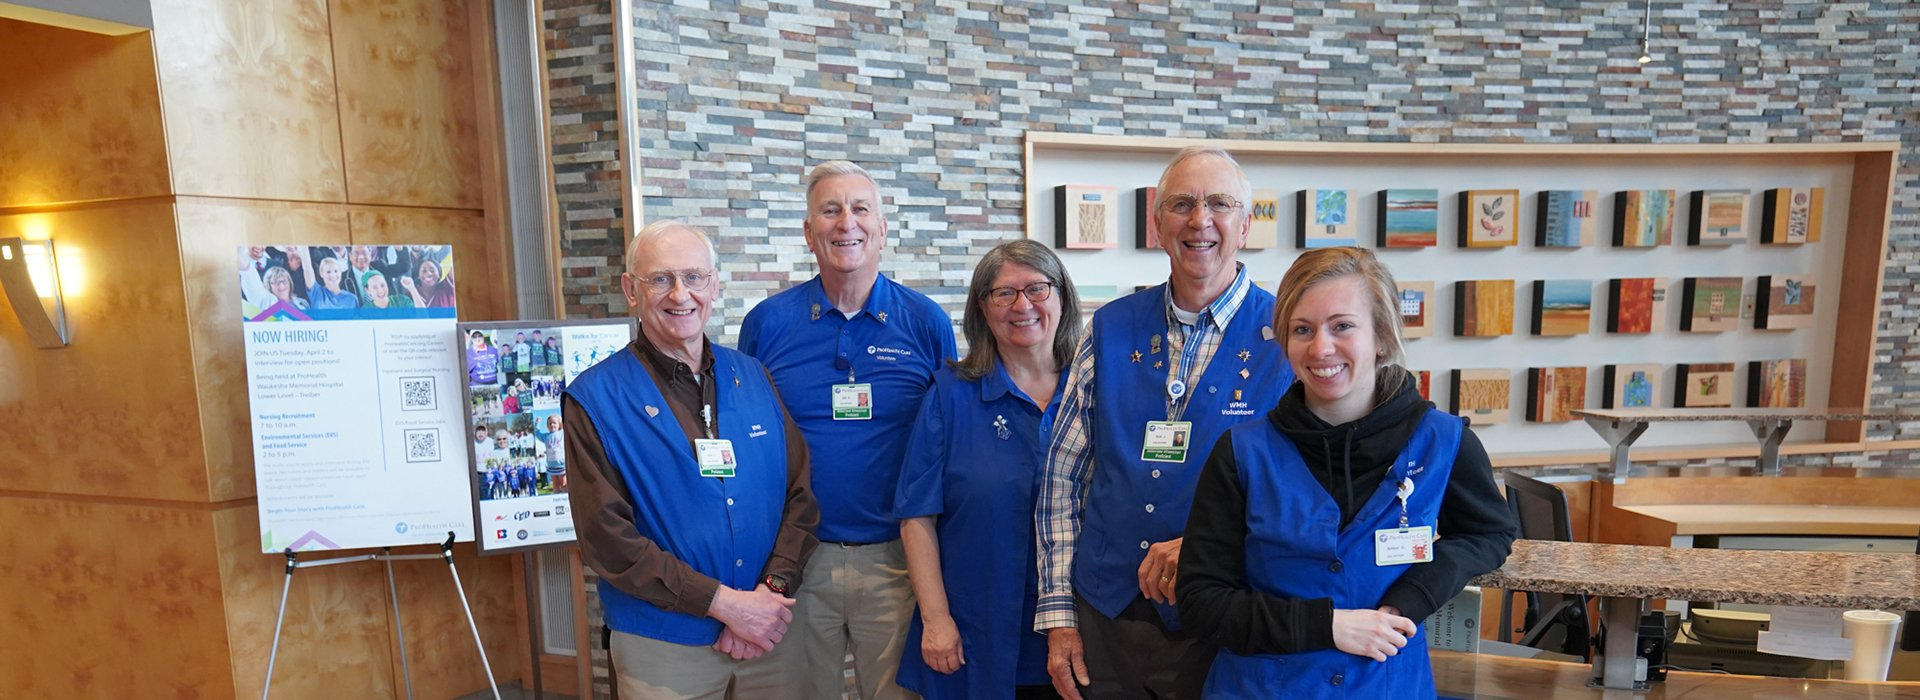 Volunteers at Waukesha Memorial Hospital.